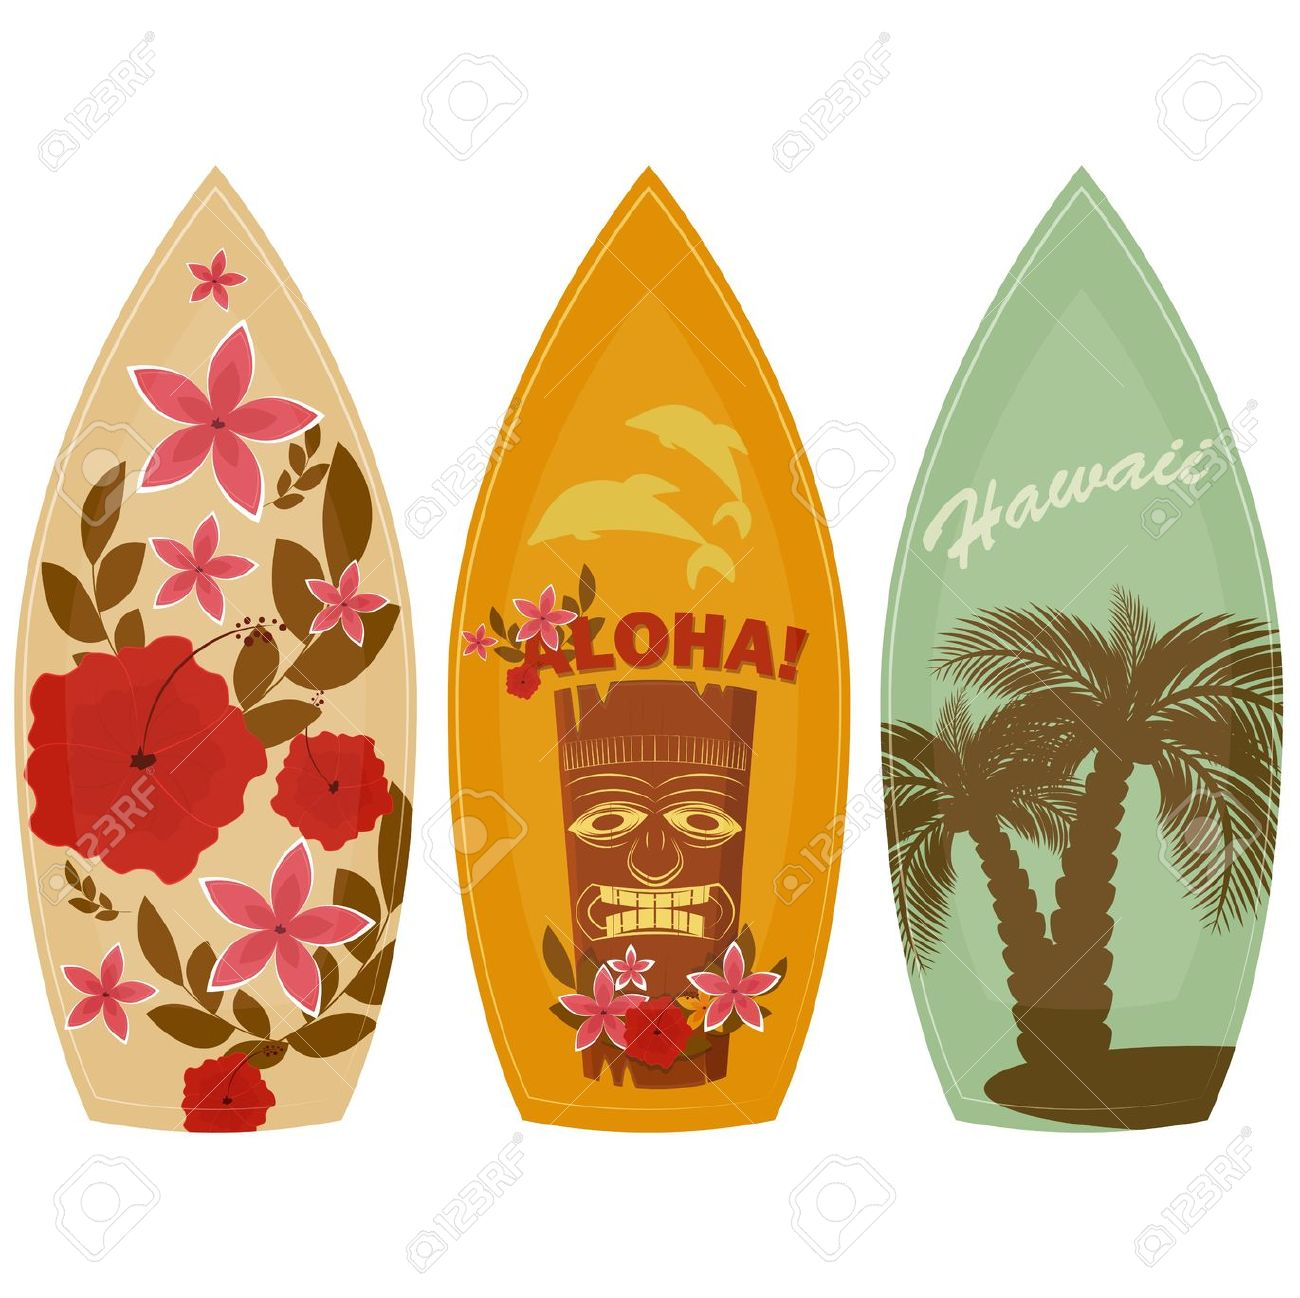 Surfboard signs background clipart banner freeuse download 11,644 Surfboard Stock Vector Illustration And Royalty Free ... banner freeuse download